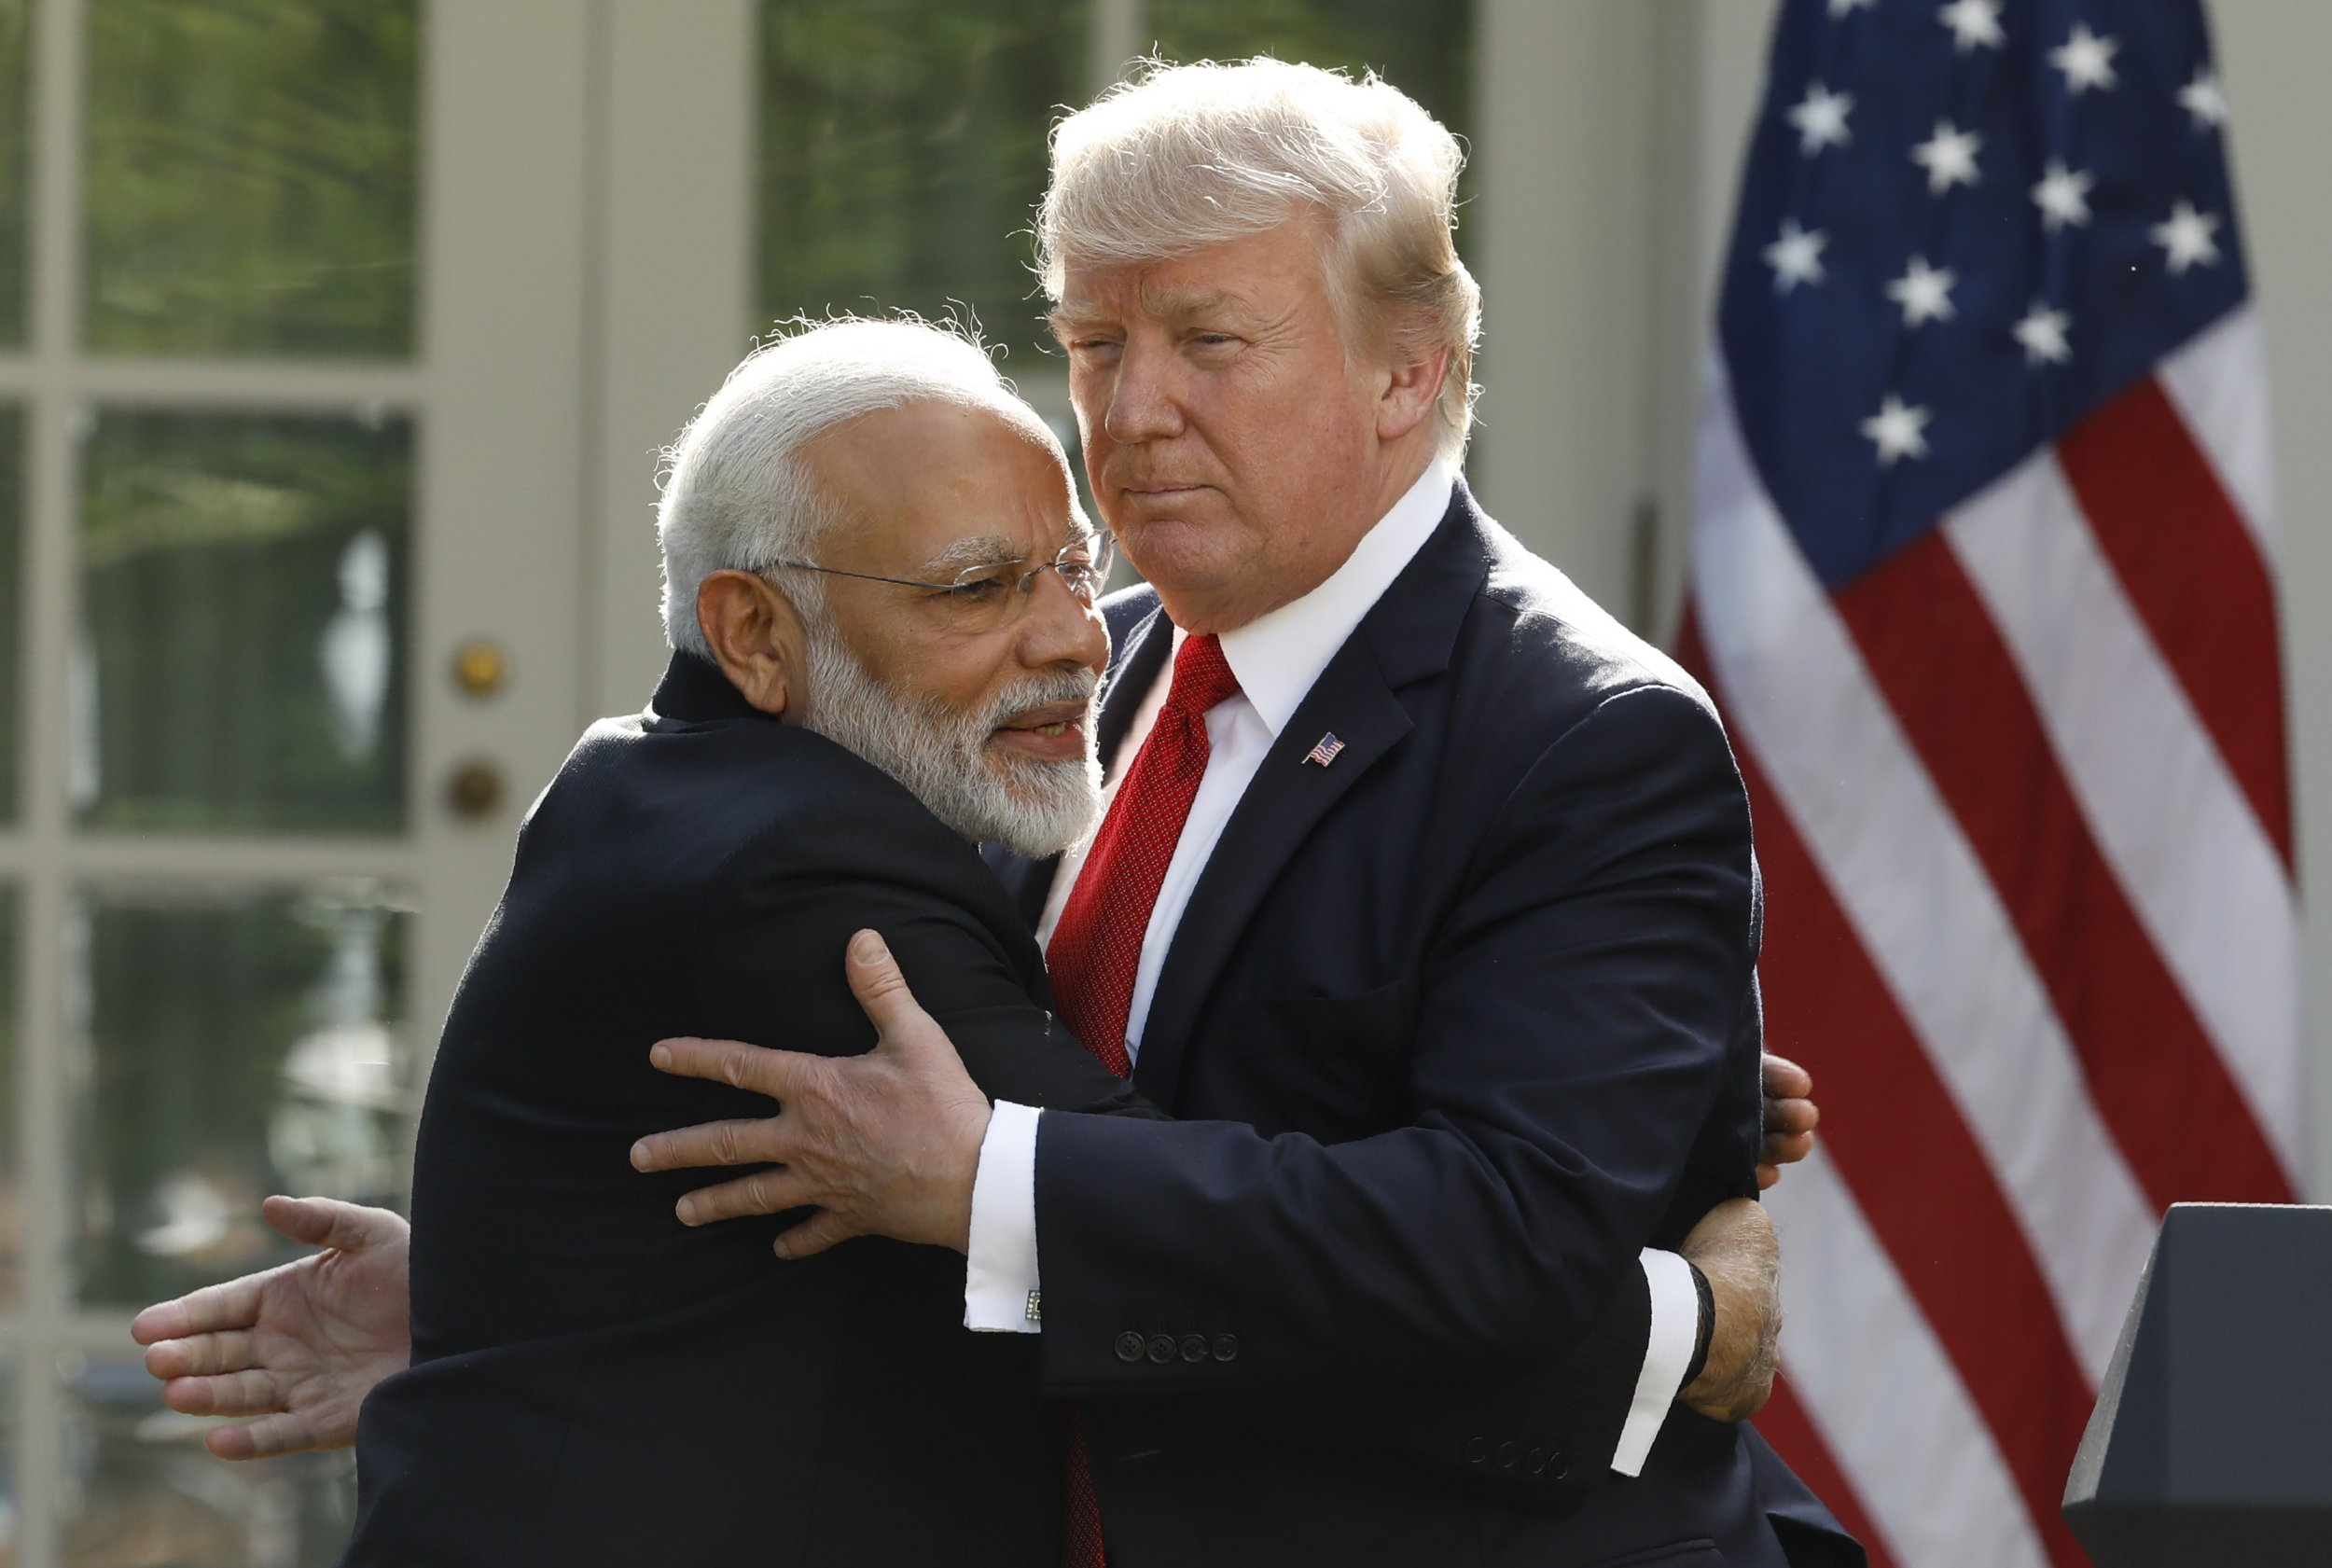 Presents for the President: Modi's Lincoln-Themed Gift Tells Trump ...